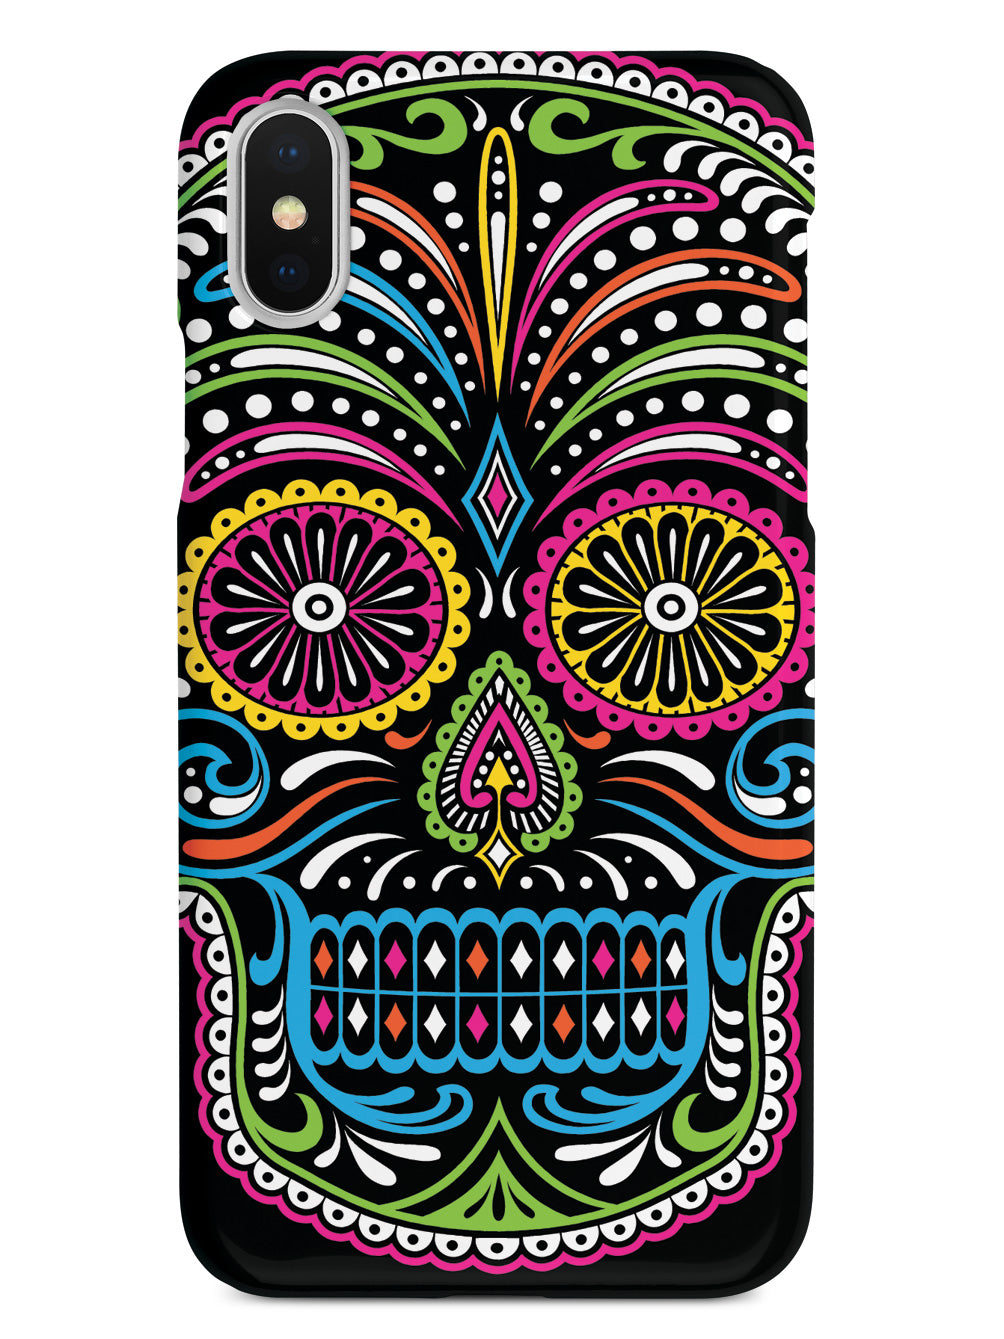 Ornate Sugar Skull Case